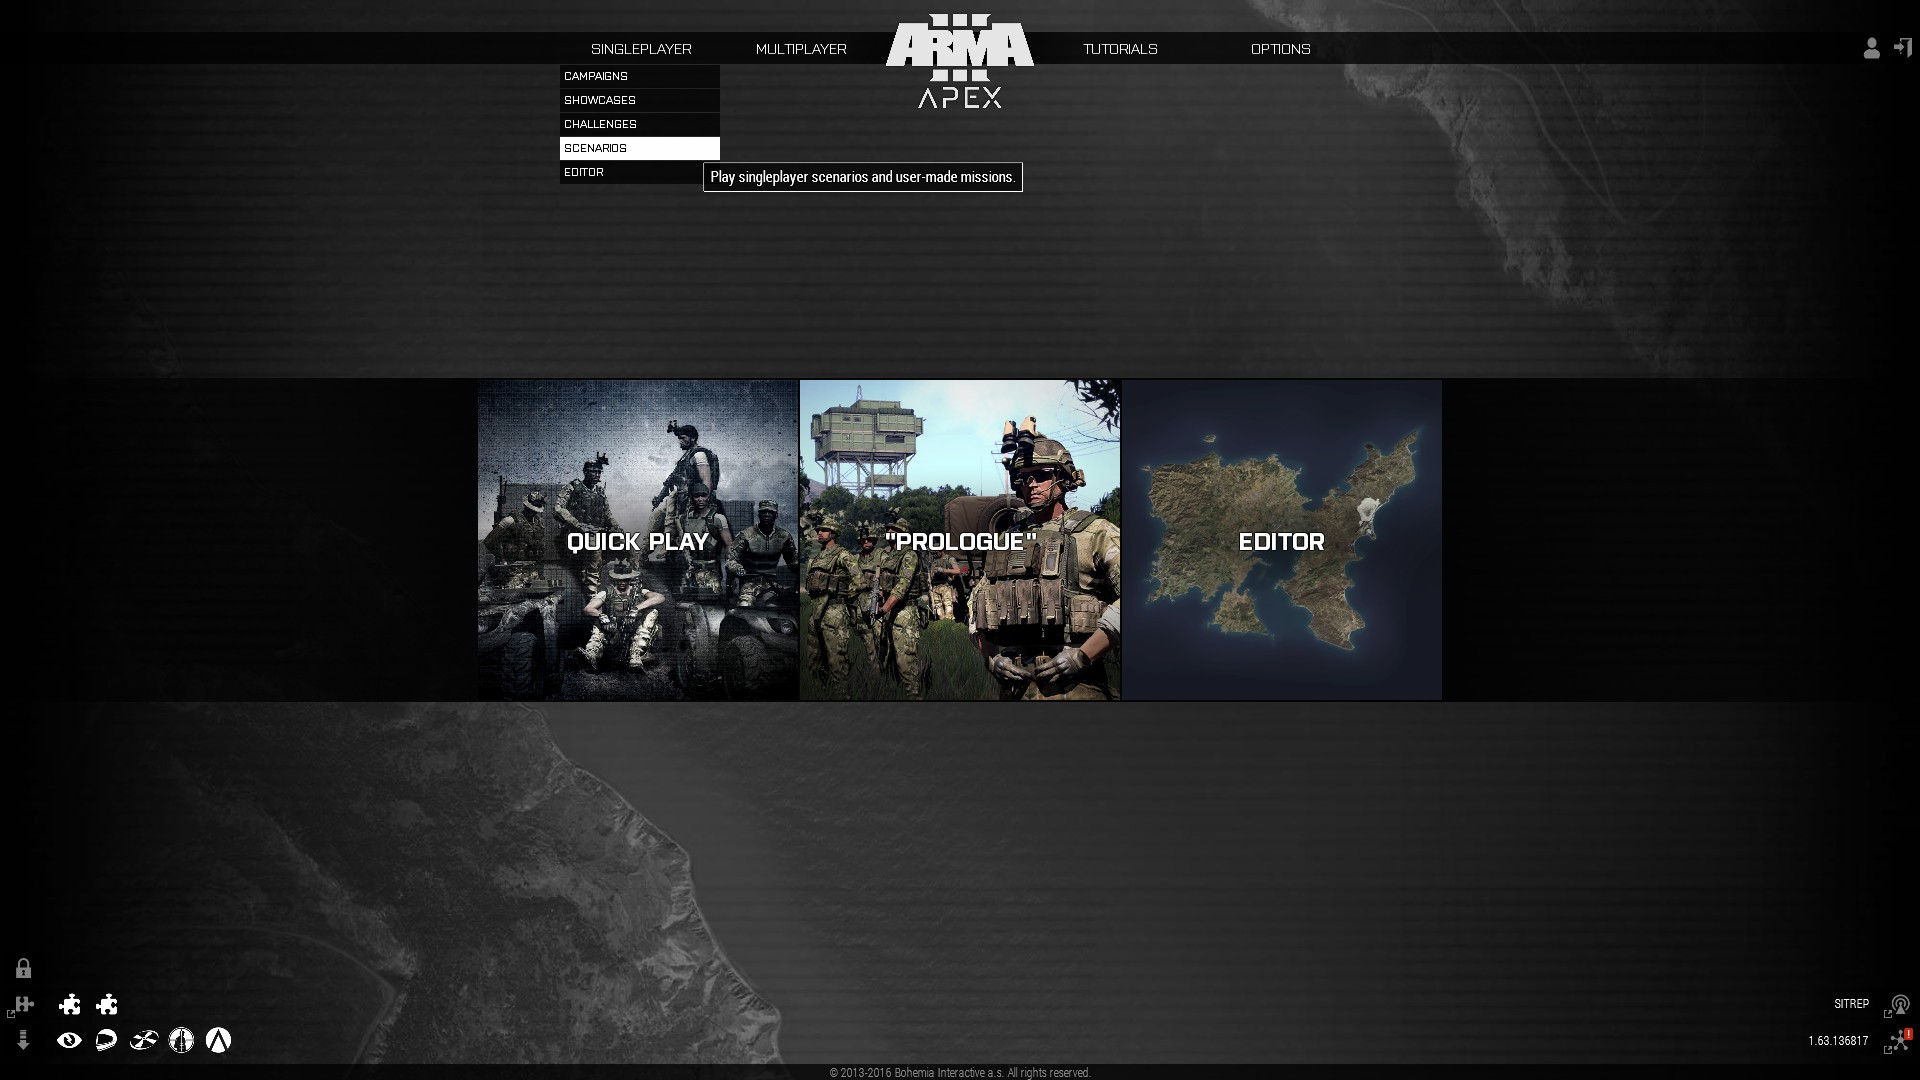 Arma 3: Totally Not a Zombie Simulator - The Something Awful